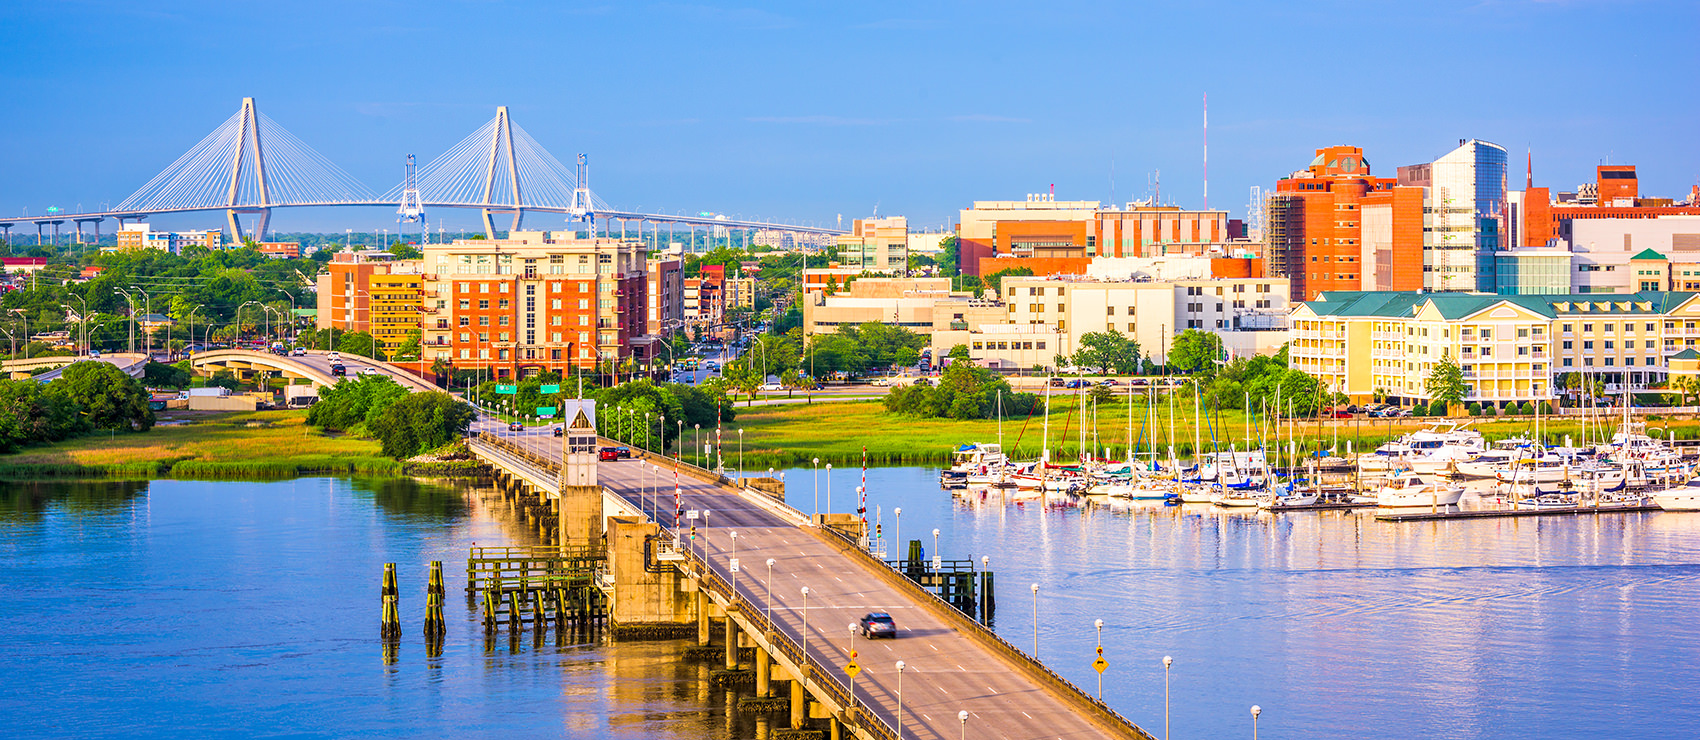 Image result for pics of charleston, sc